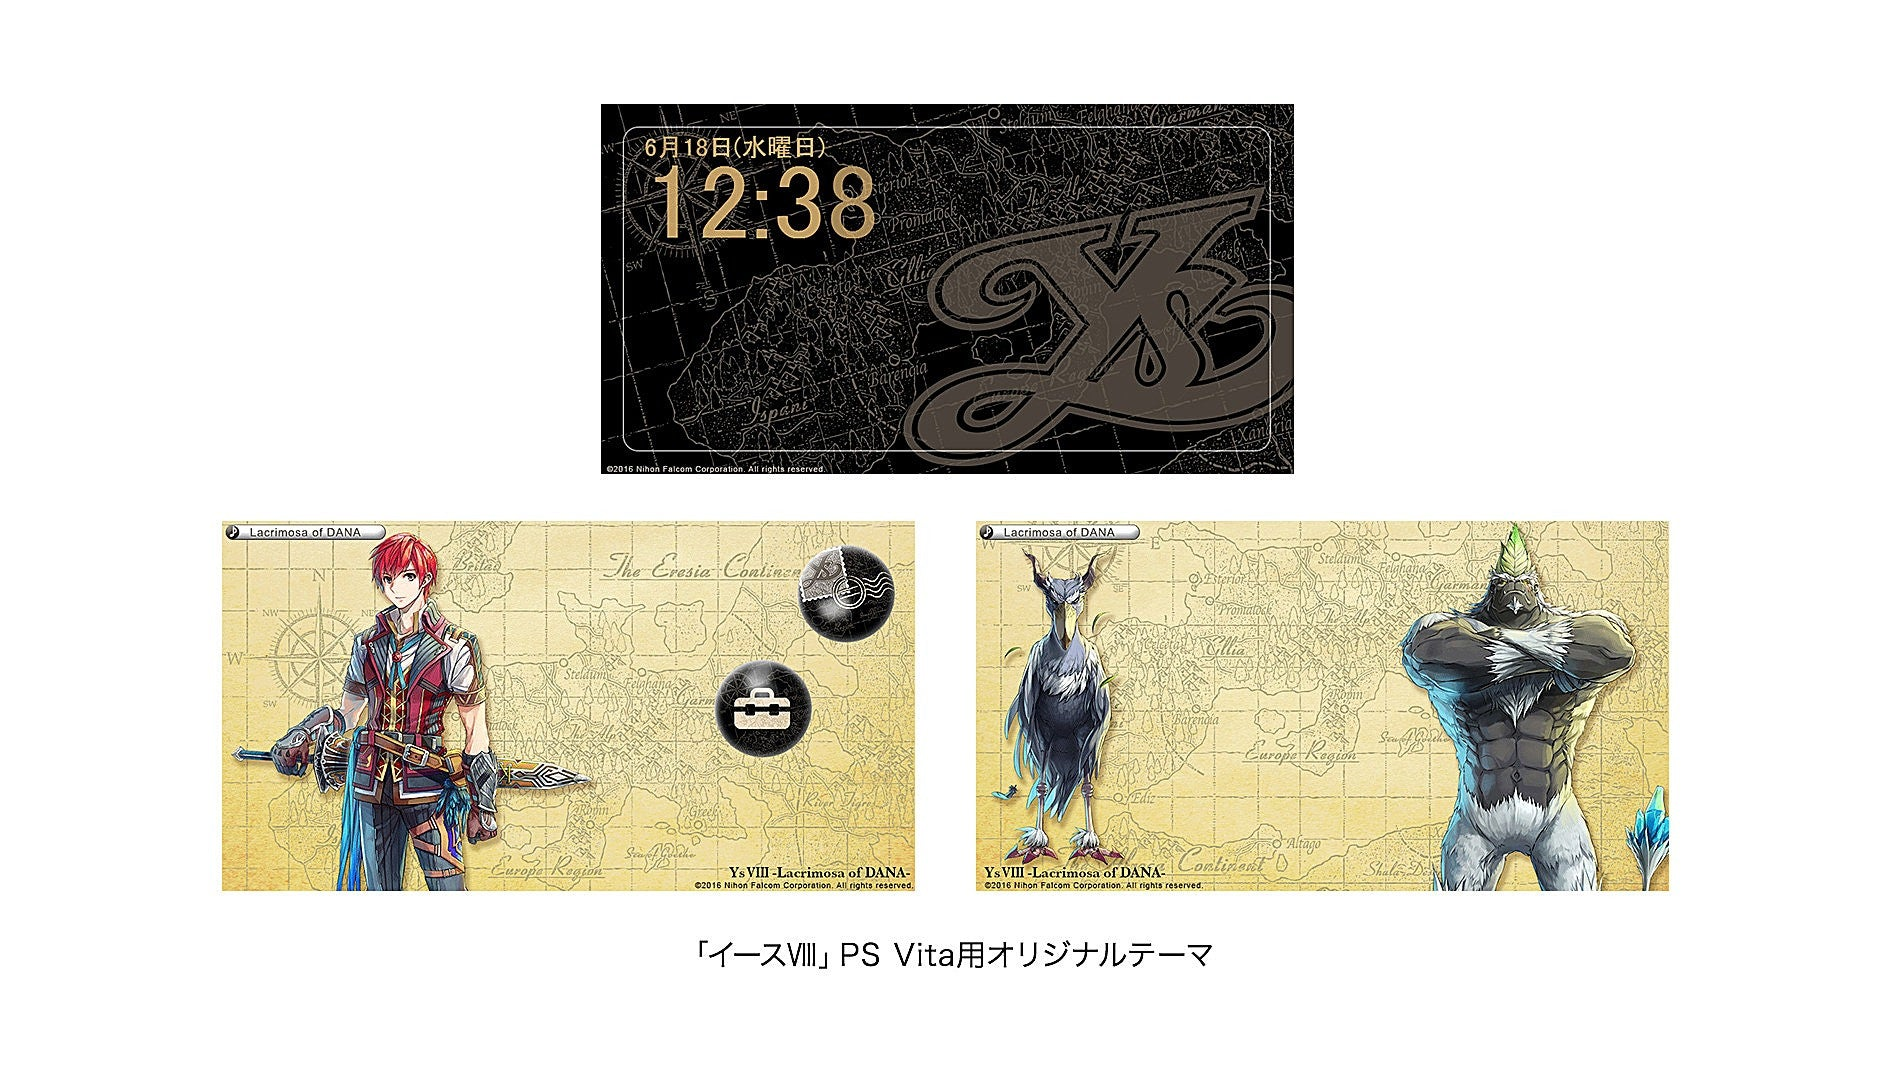 Image 3 for PlayStation Vita Wi-fi Model Ys VIII Black Pearl Edition